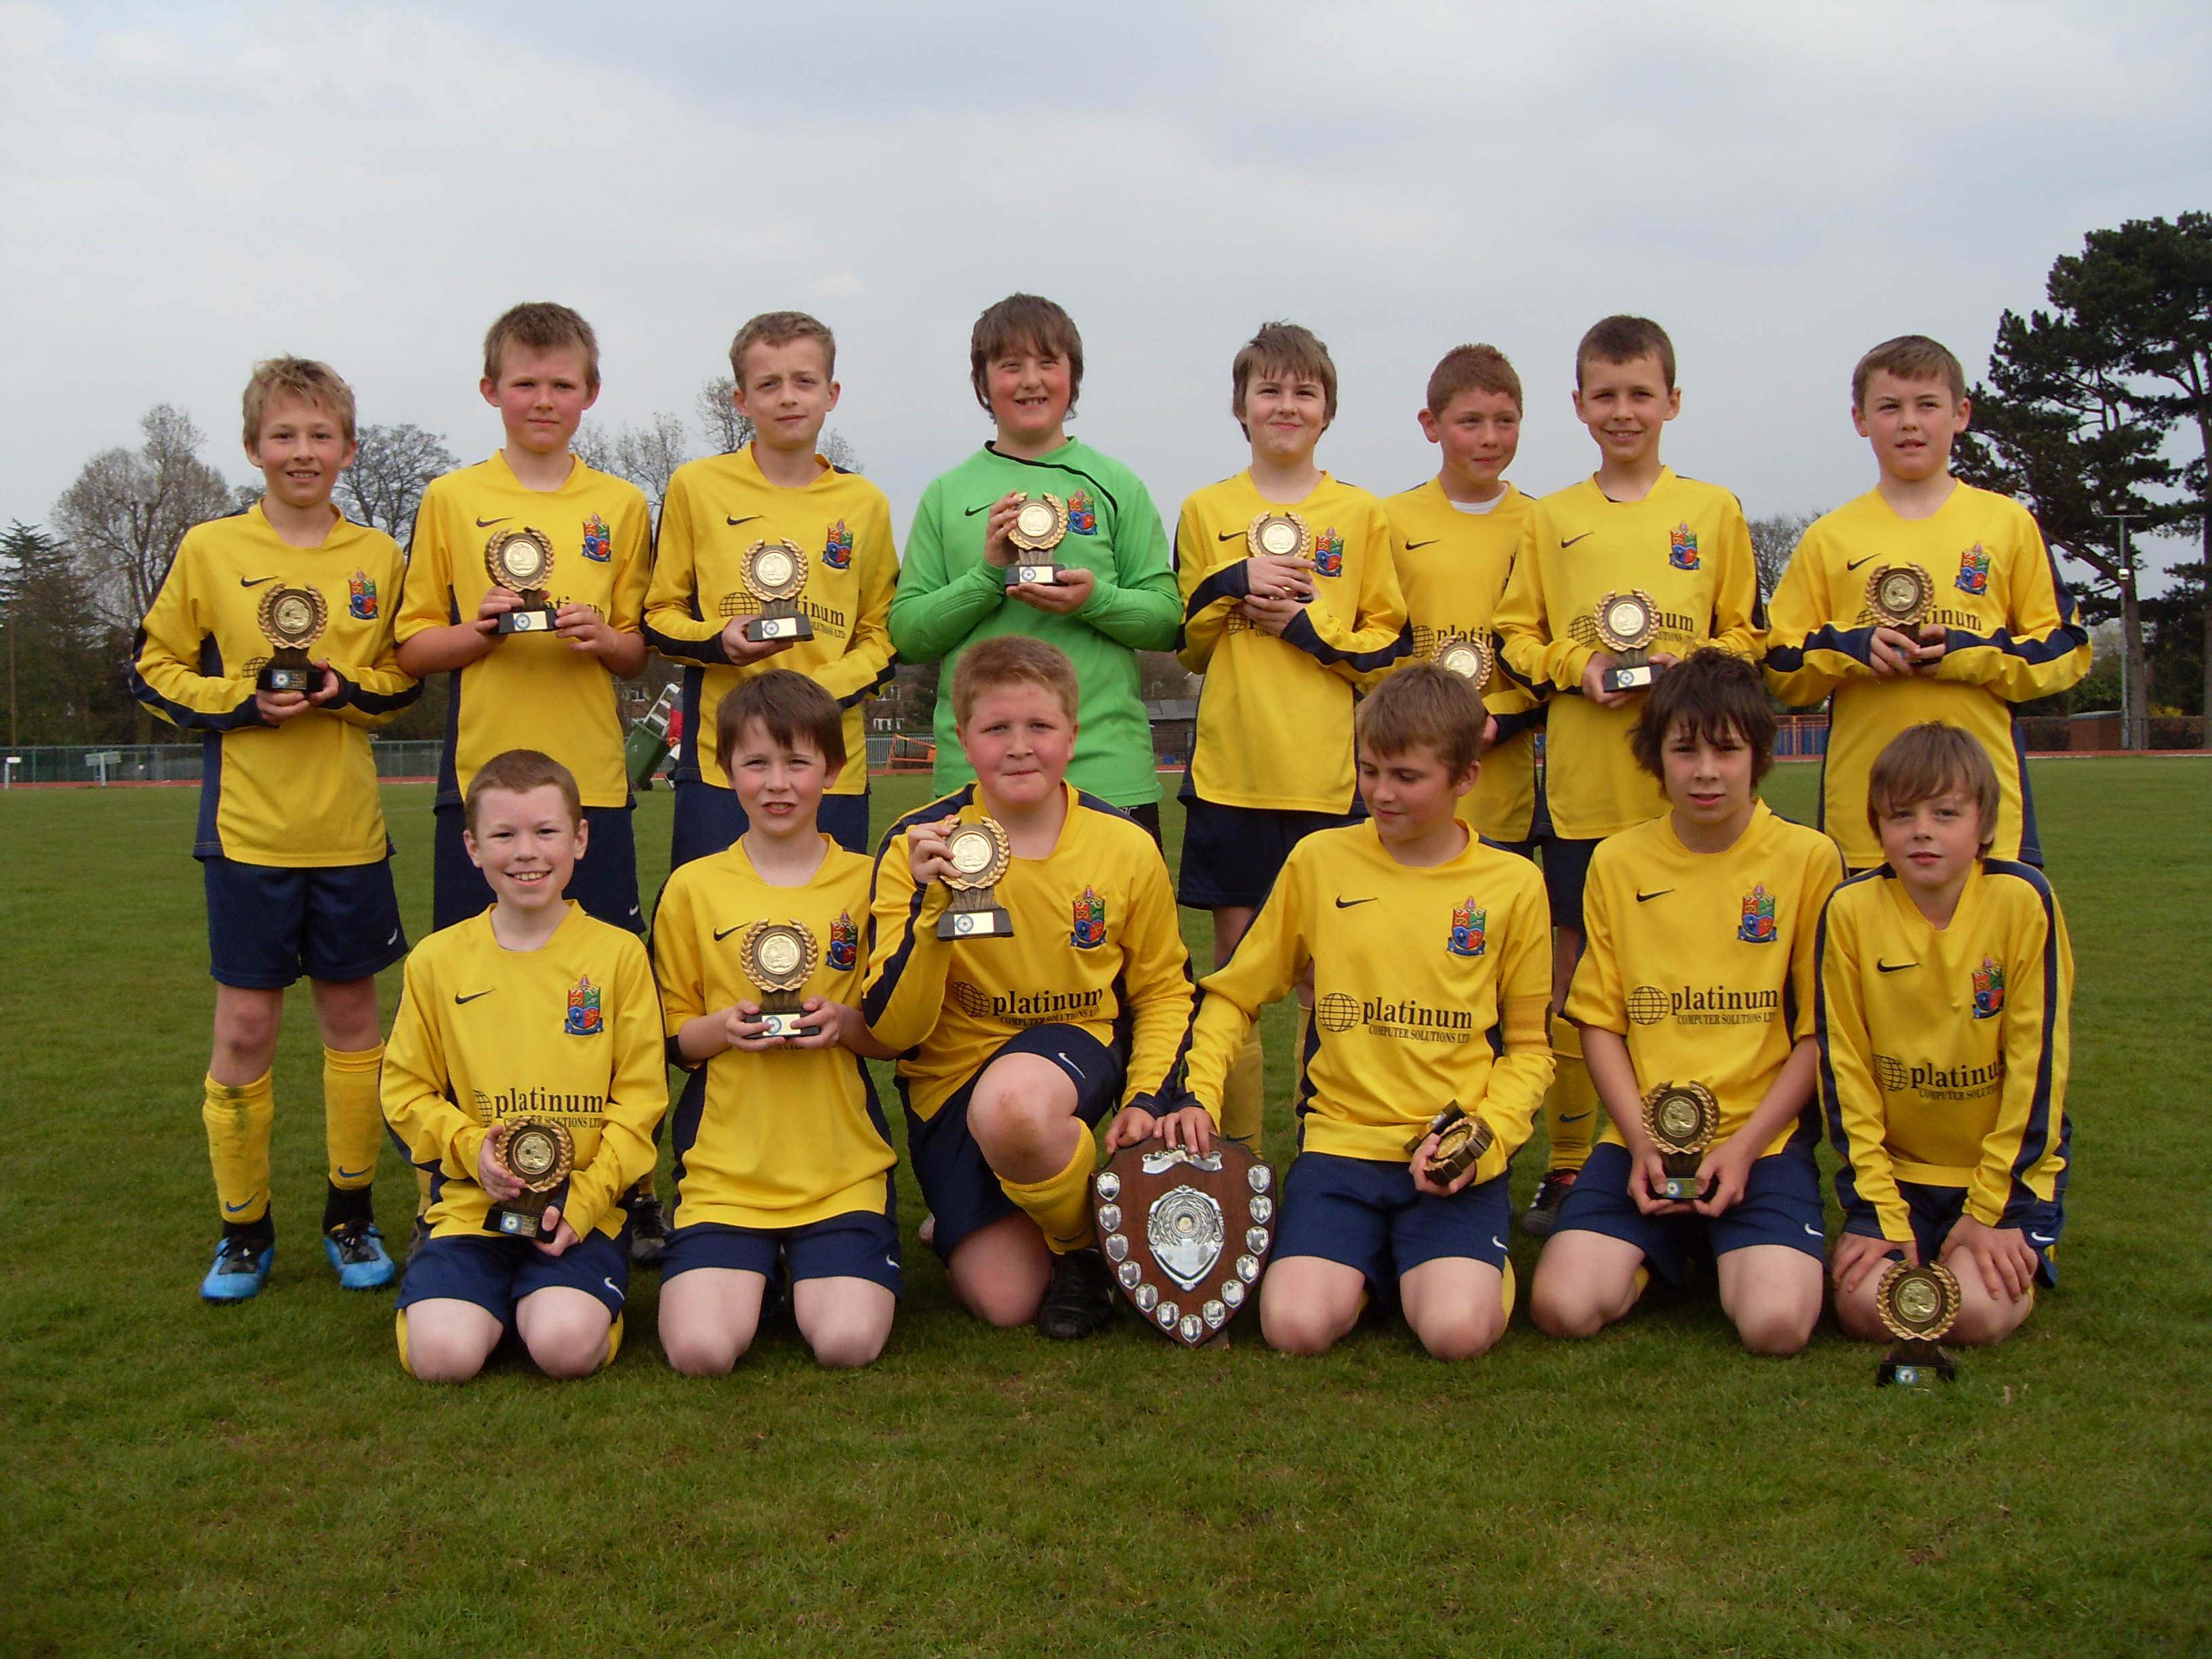 Eccleshall Eagles under 12s shield winners